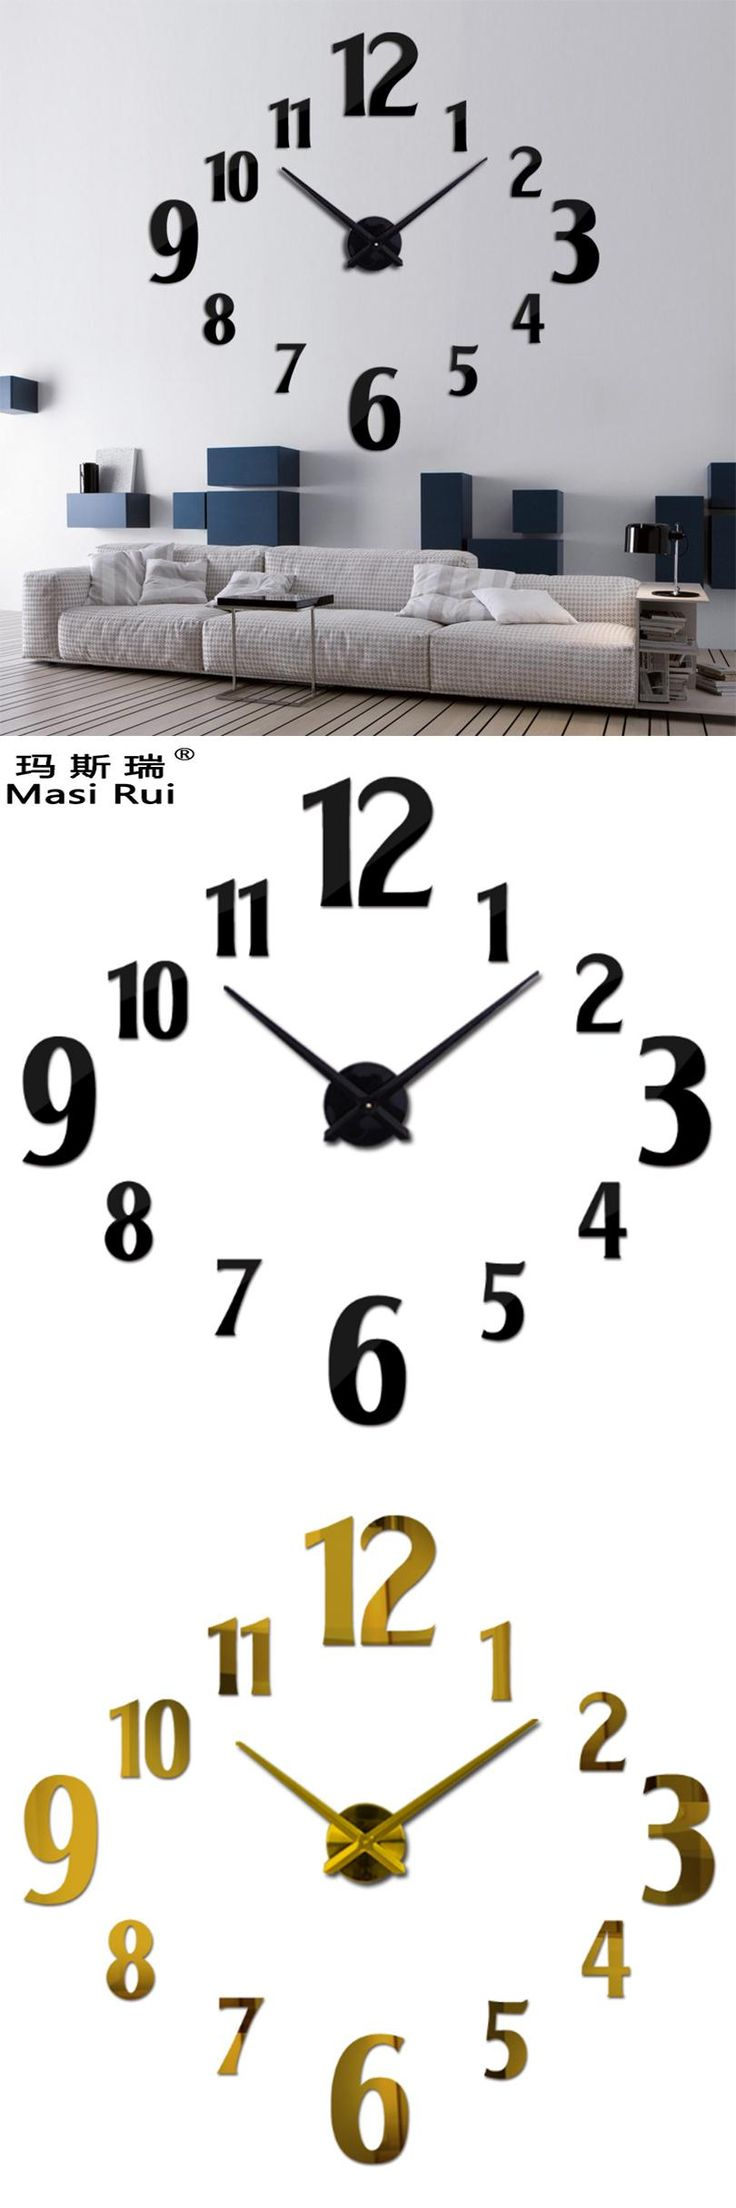 The 25 best large wall clocks ideas on pinterest clocks wall masi rui 3d large wall clock home decor quartz diy wall watch clocks living room metal amipublicfo Choice Image